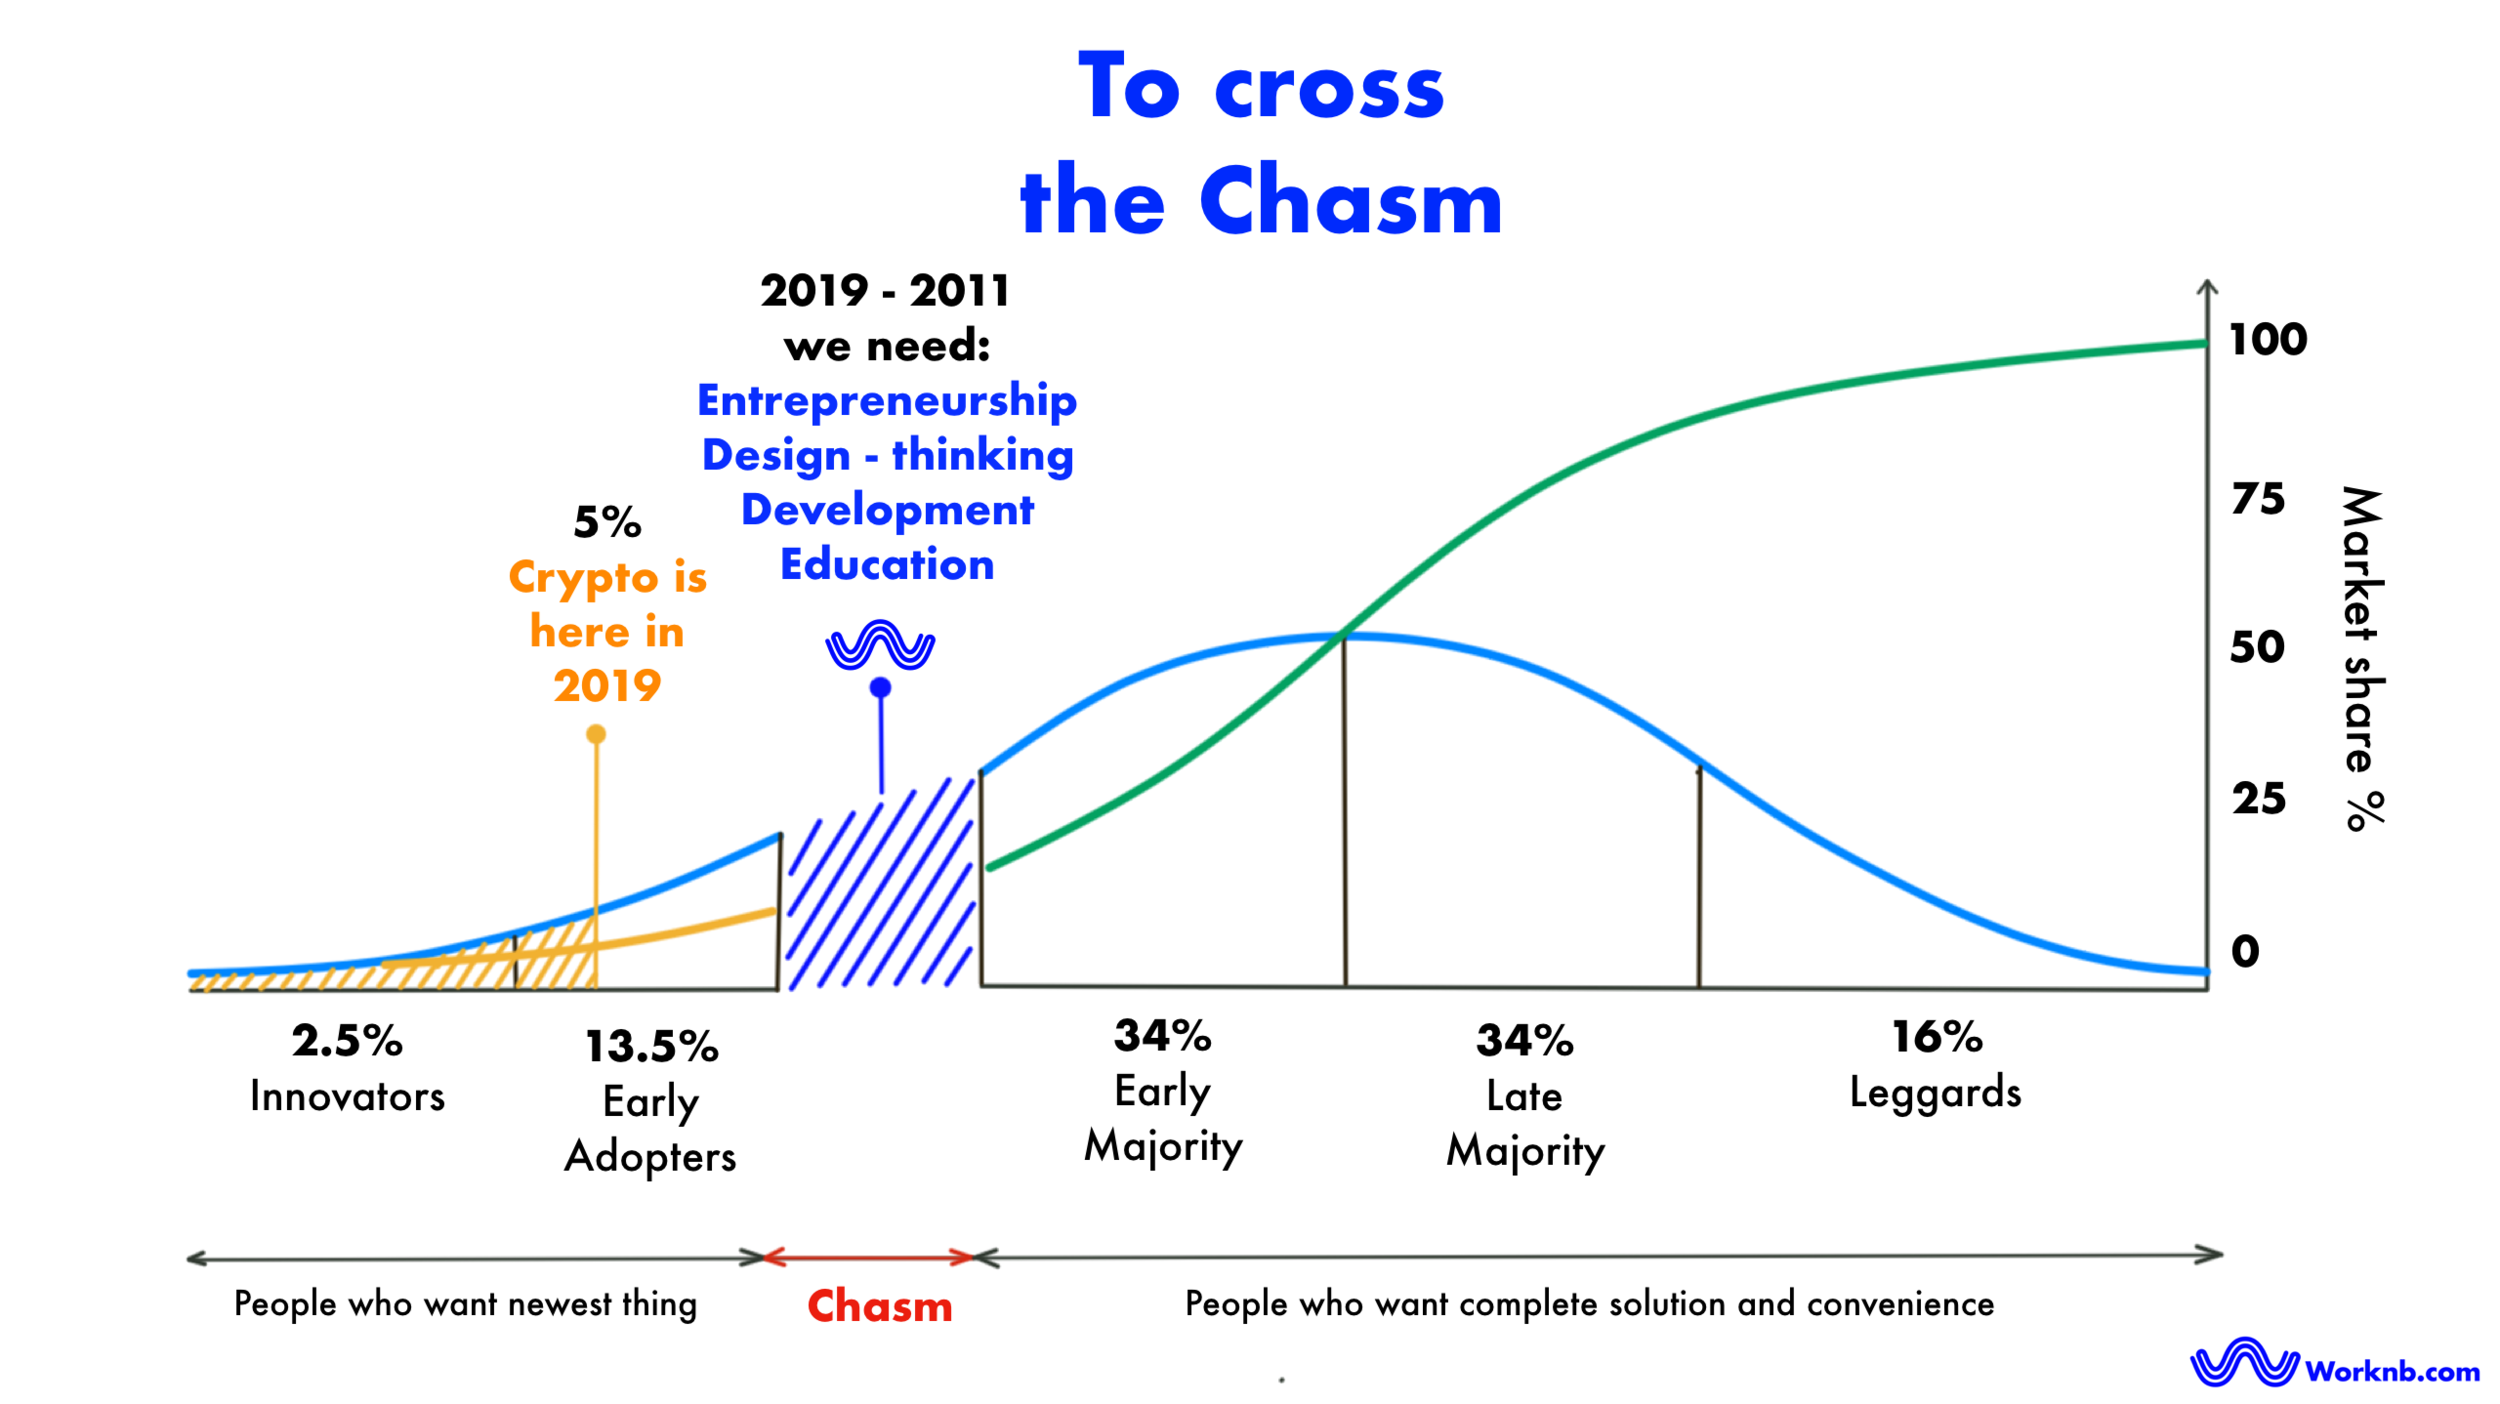 Crossing the chasm of crypto adoption | Worknb.com